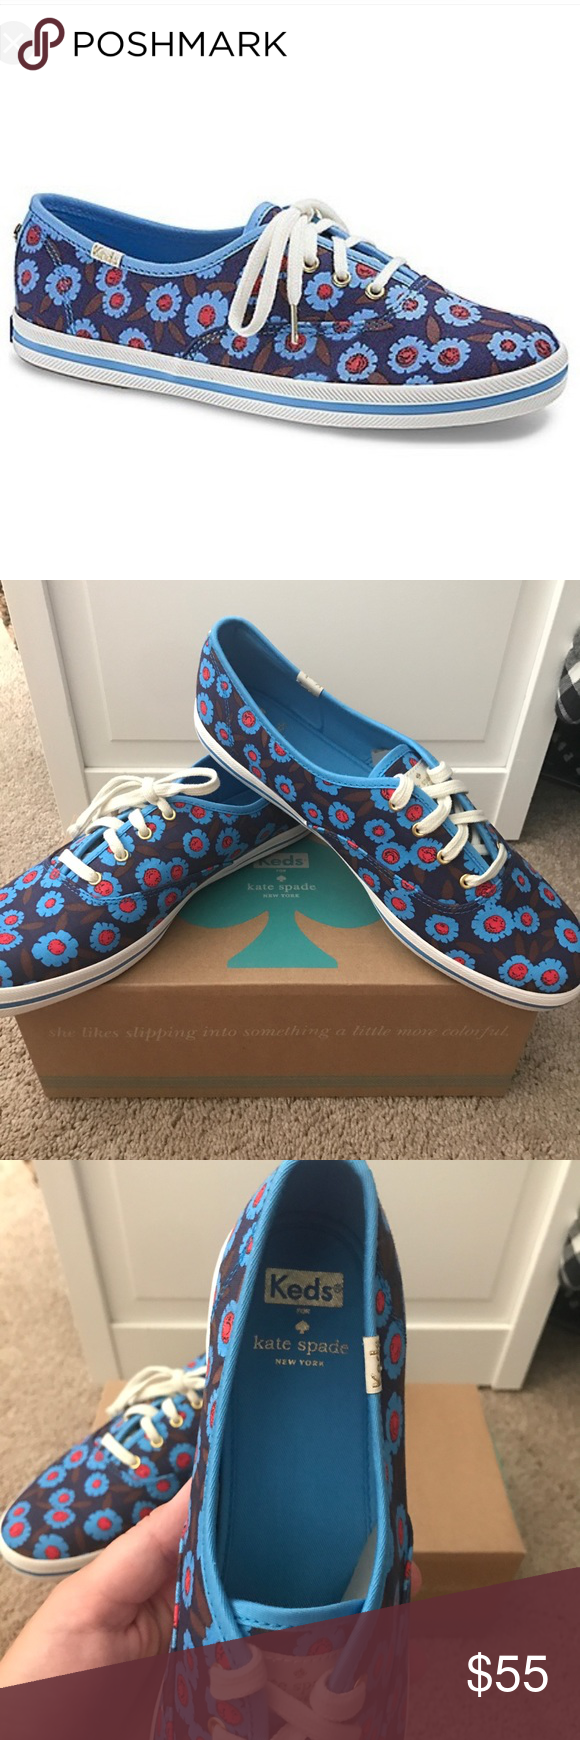 cb4986f3063a New in box keds for kate spade New never worn kate spade for keds sneakers  size 10 super cute blue